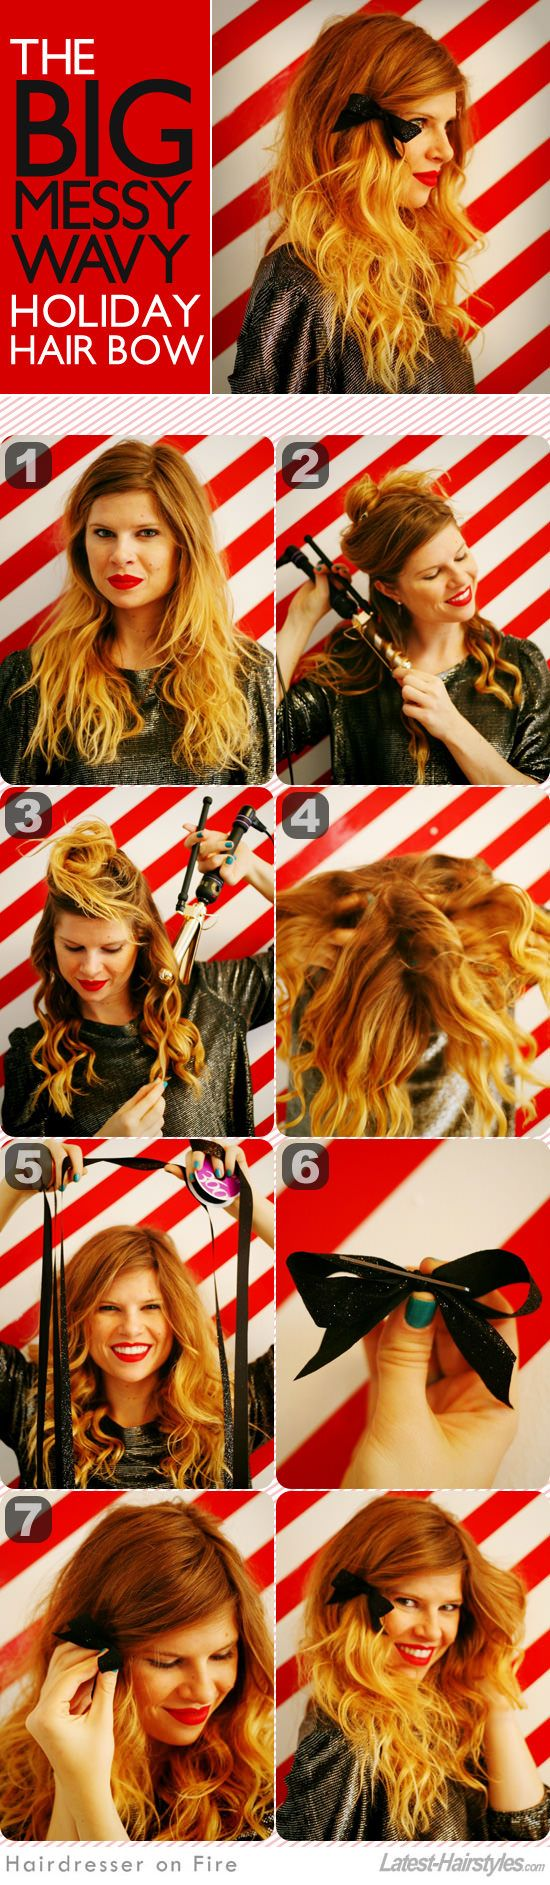 Big messy waves with a bow! Full tutorial here...     http://www.latest-hairstyles.com/tutorials/big-messy-waves.html